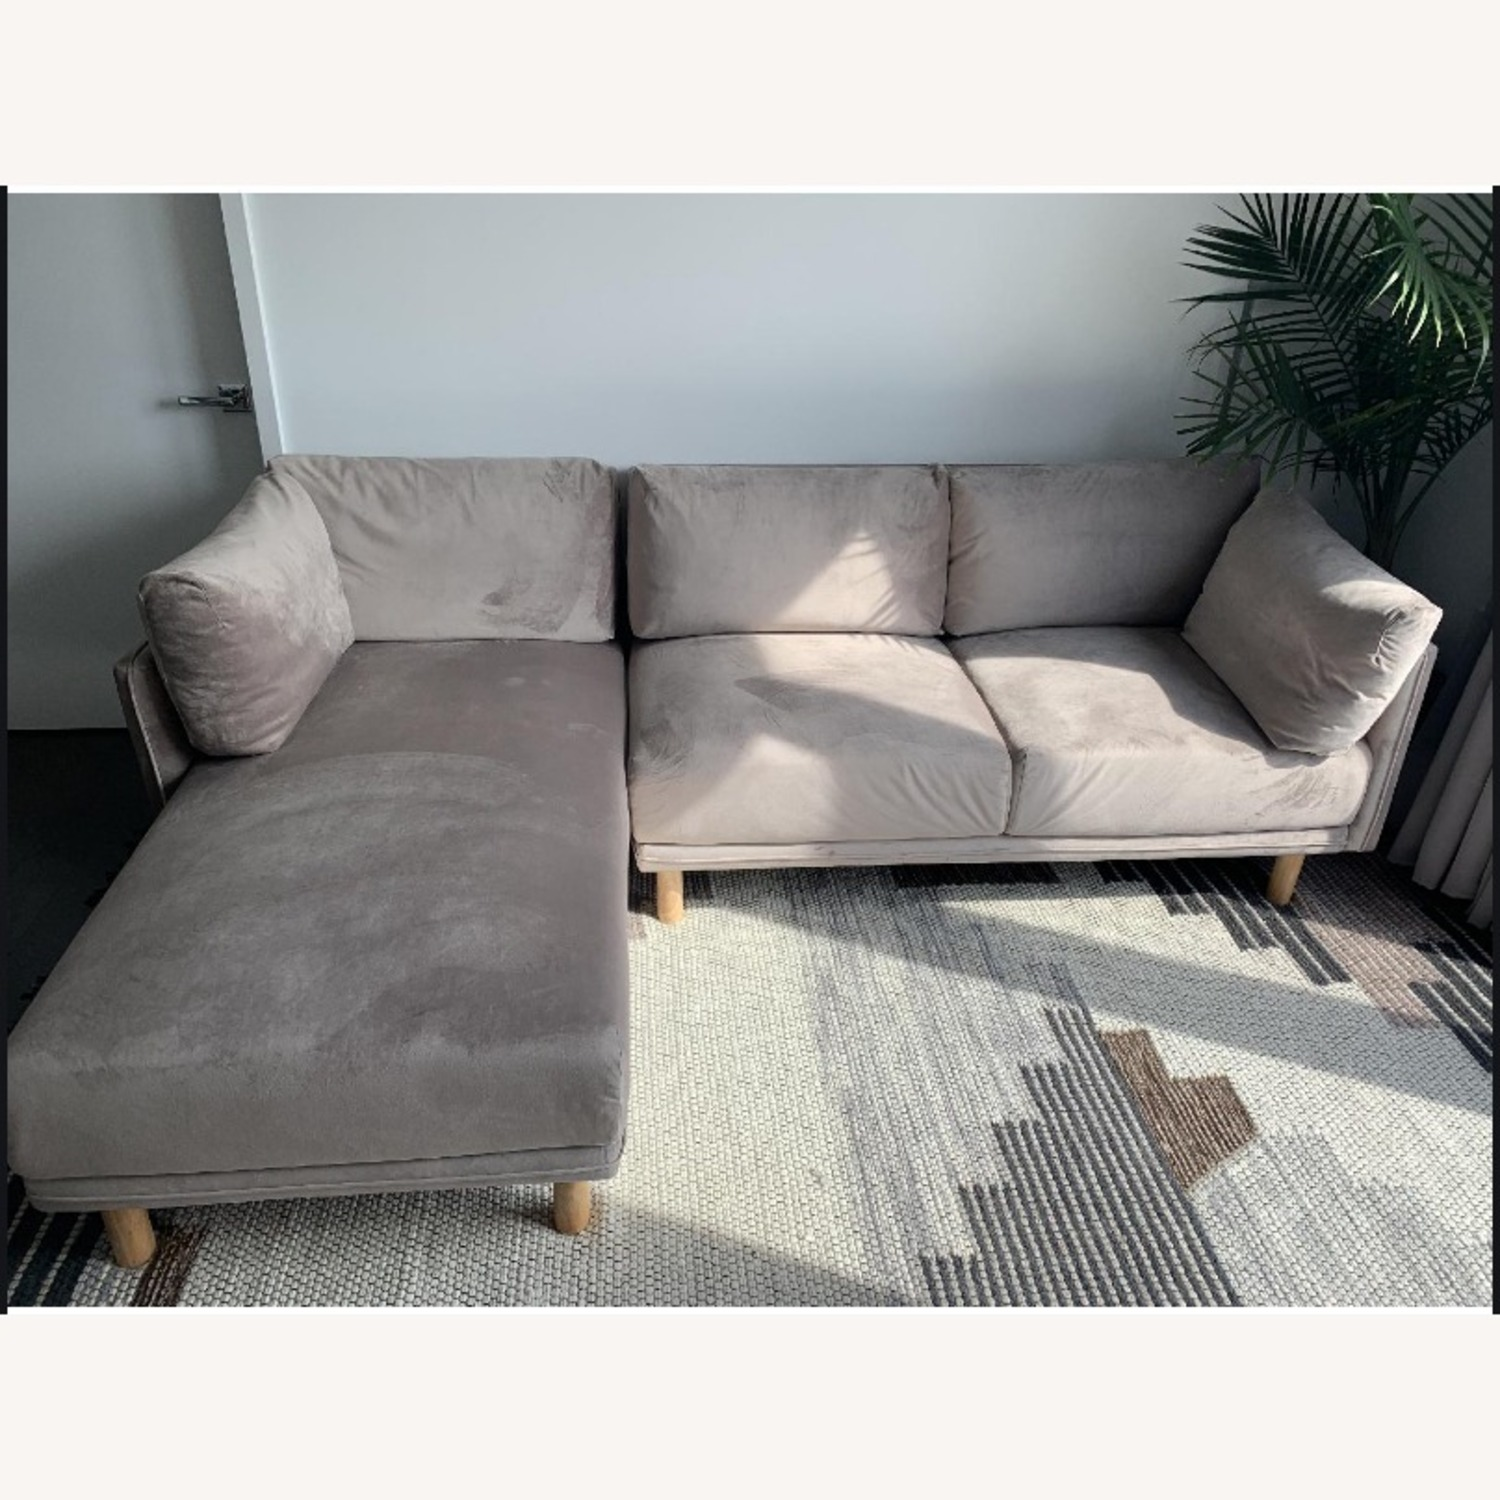 Rove Anderson Collection Sectional Sofa - image-1